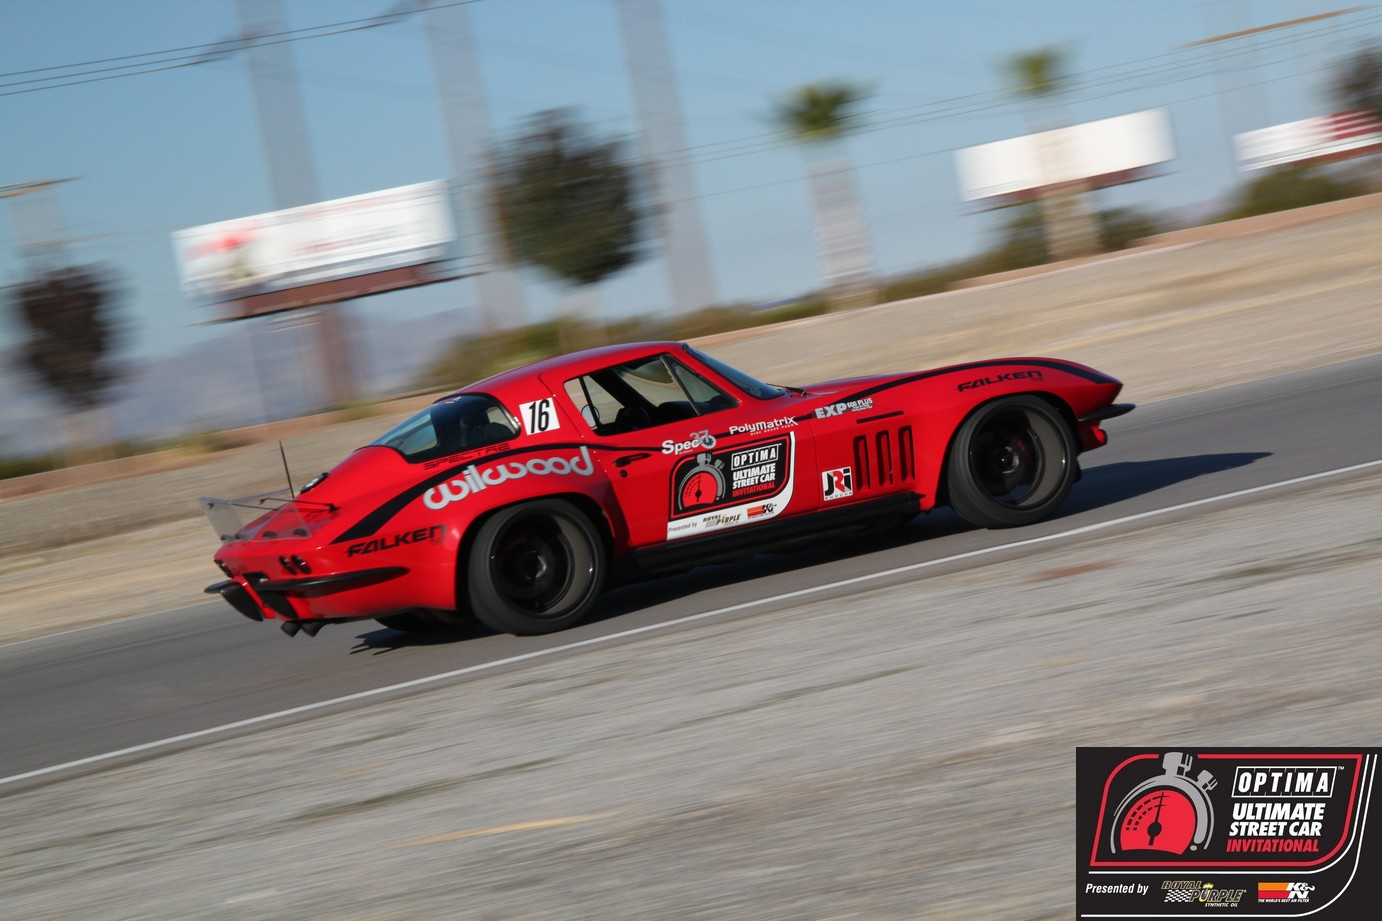 1965 Corvette Wins 2013 OPTIMA® Ultimate Street Car Title